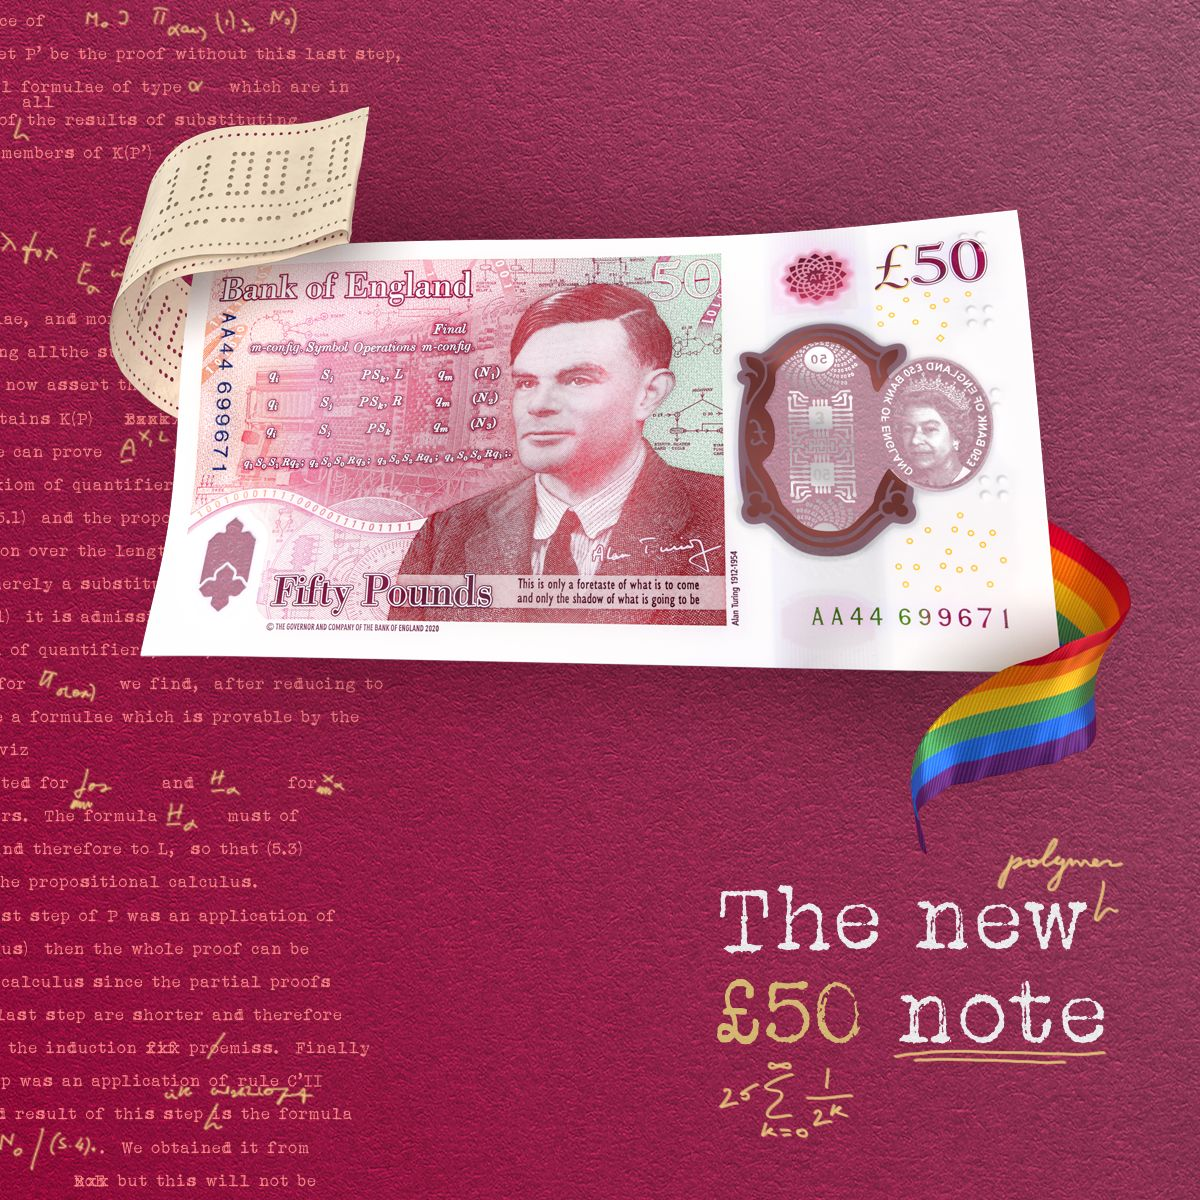 A rendering of the back of the new £50 note featuring Alan Turing